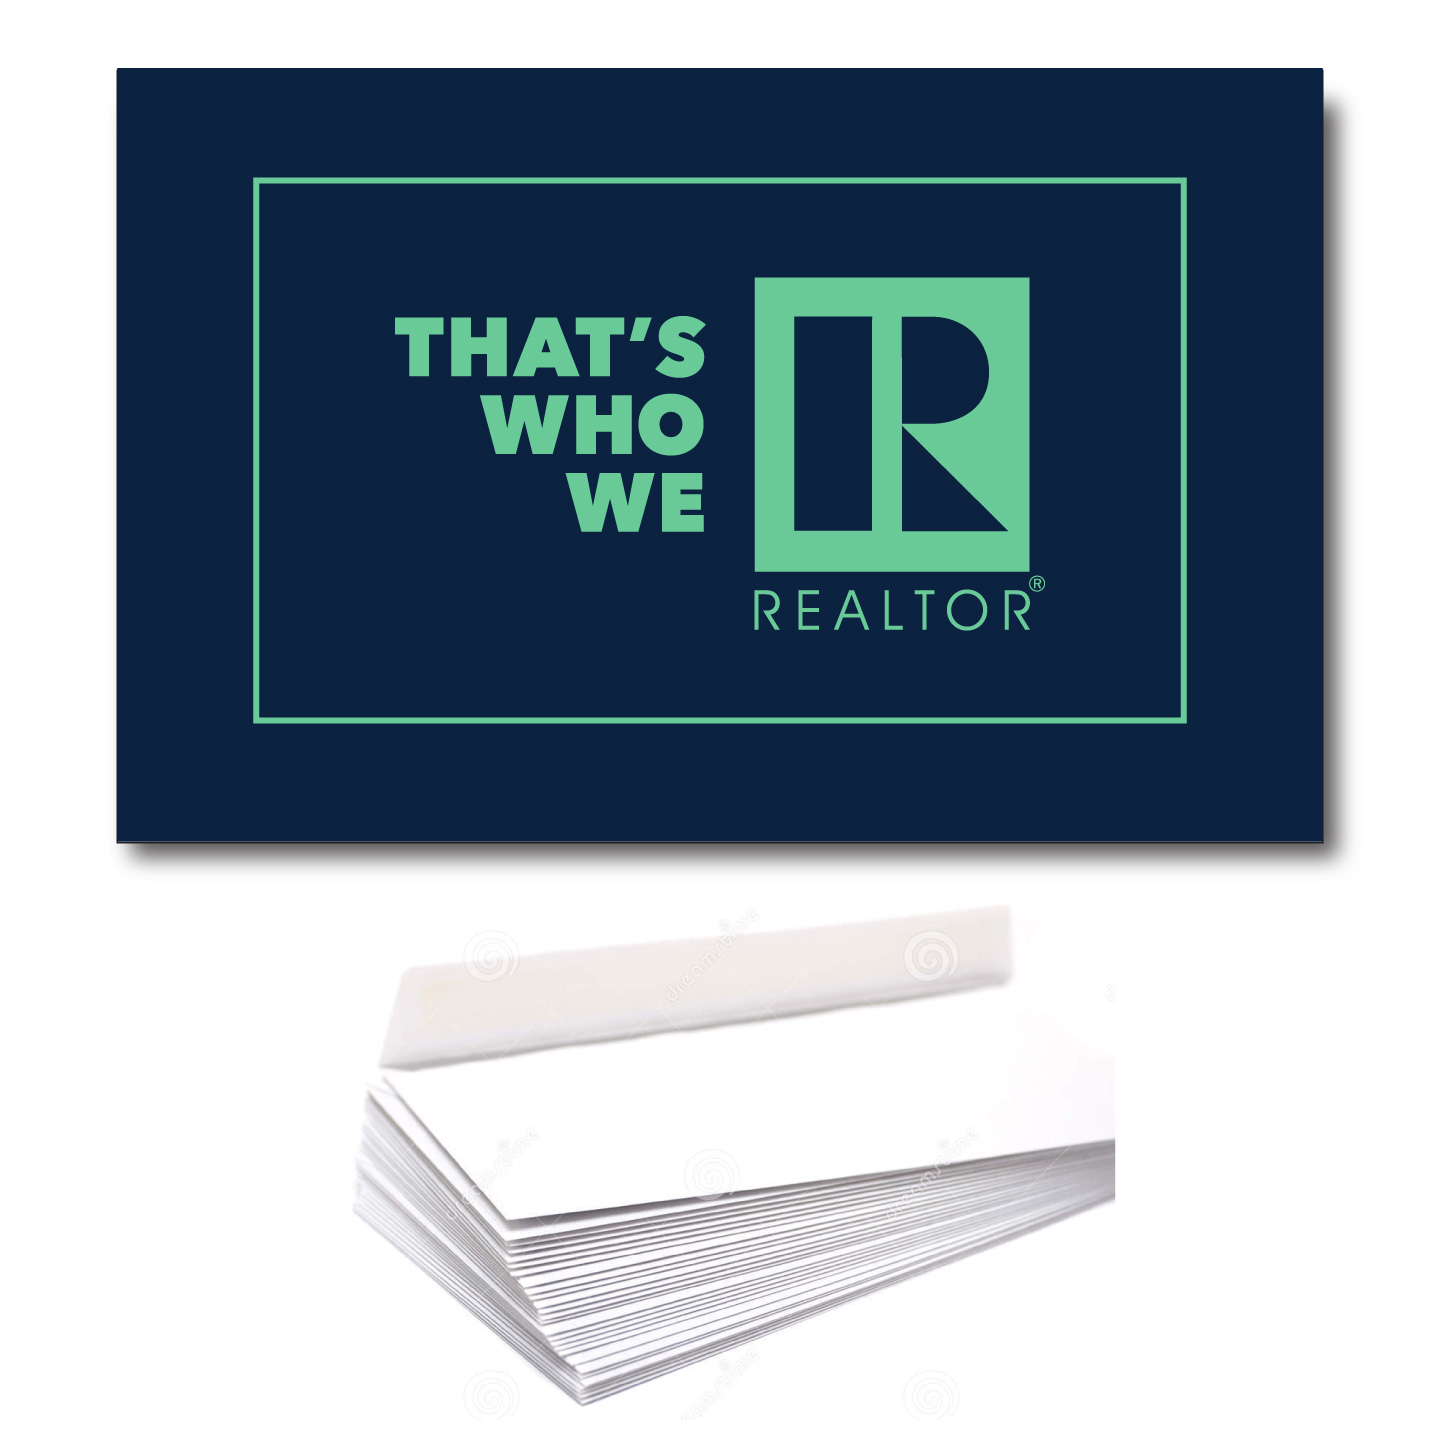 Thats Who We R Notecard/Greeting Card Set RTS4013,Notes,Cards,Greetings,Notecards,Envelopes,Mailings,Thanks,Thankyous,TWWR,Thats,Whos,Wes,Ares,